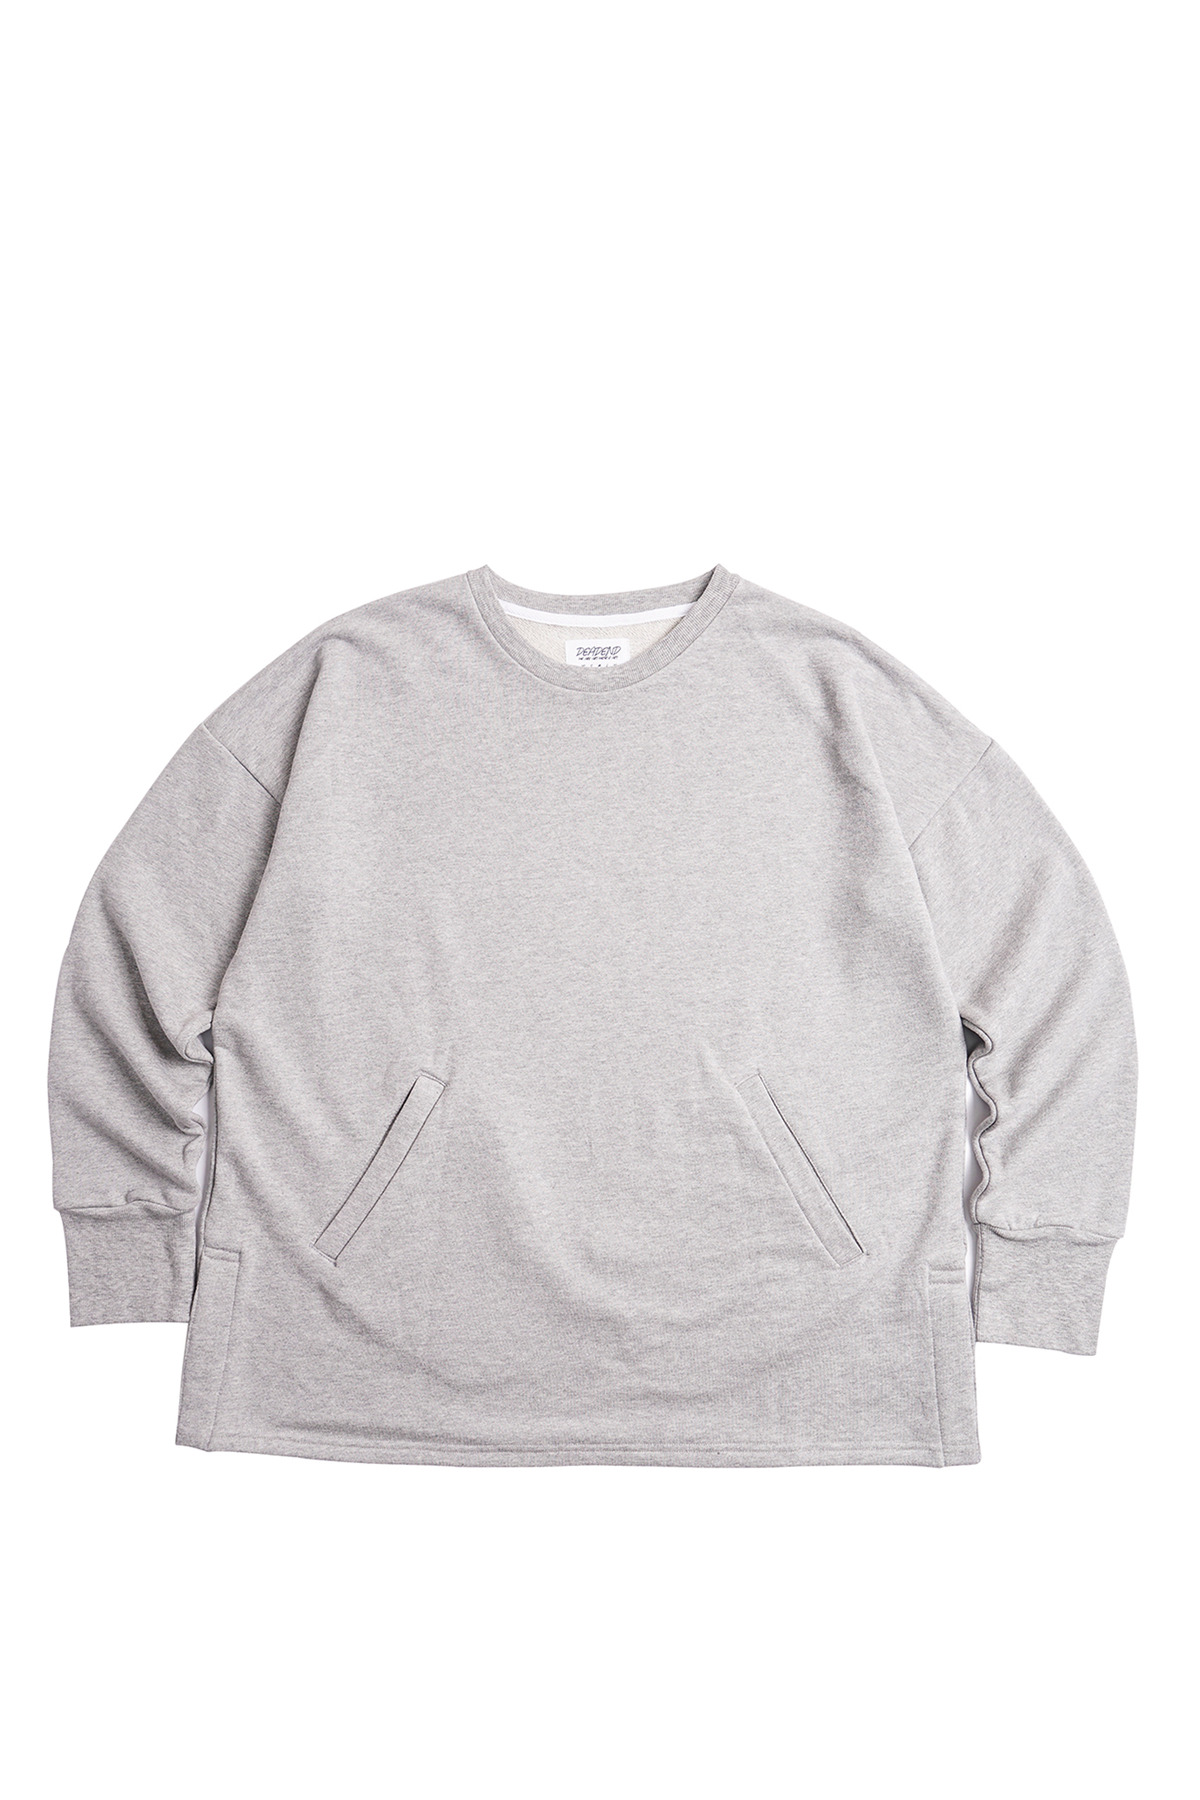 GREY SET IN RAGLAN SWEAT SHIRTS